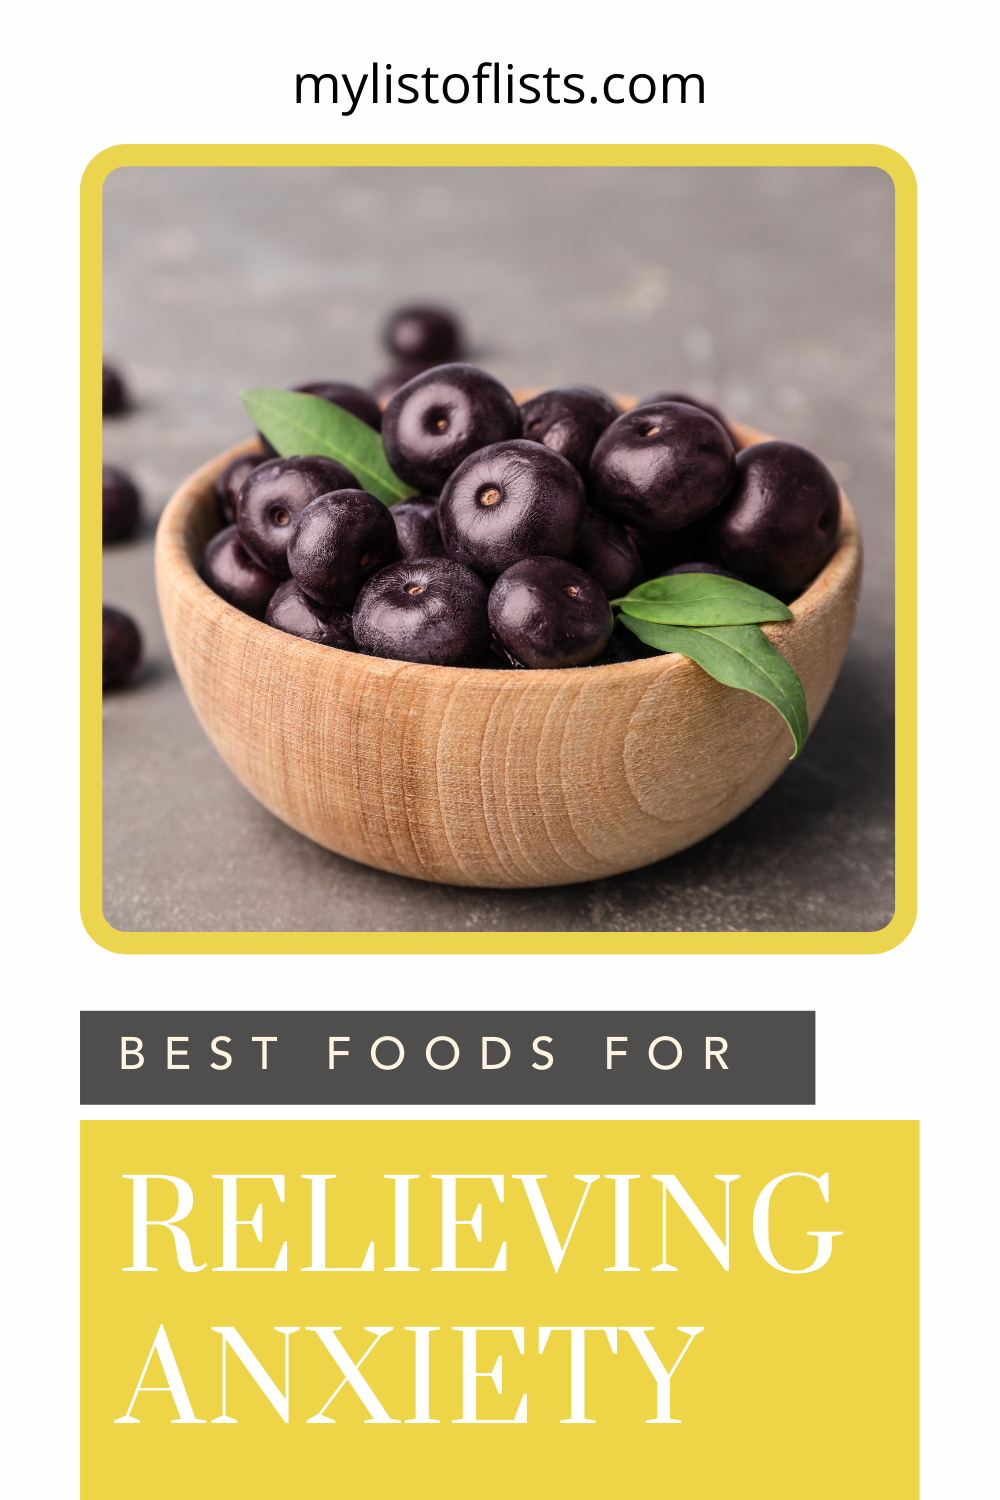 Mylistoflists.com has an eclectic compilation of tips and hacks to make all parts of your life easier. Find loads of ideas for creative and effective organization solutions. Learn how you can relieve your anxieties by simply eating more tasty foods!